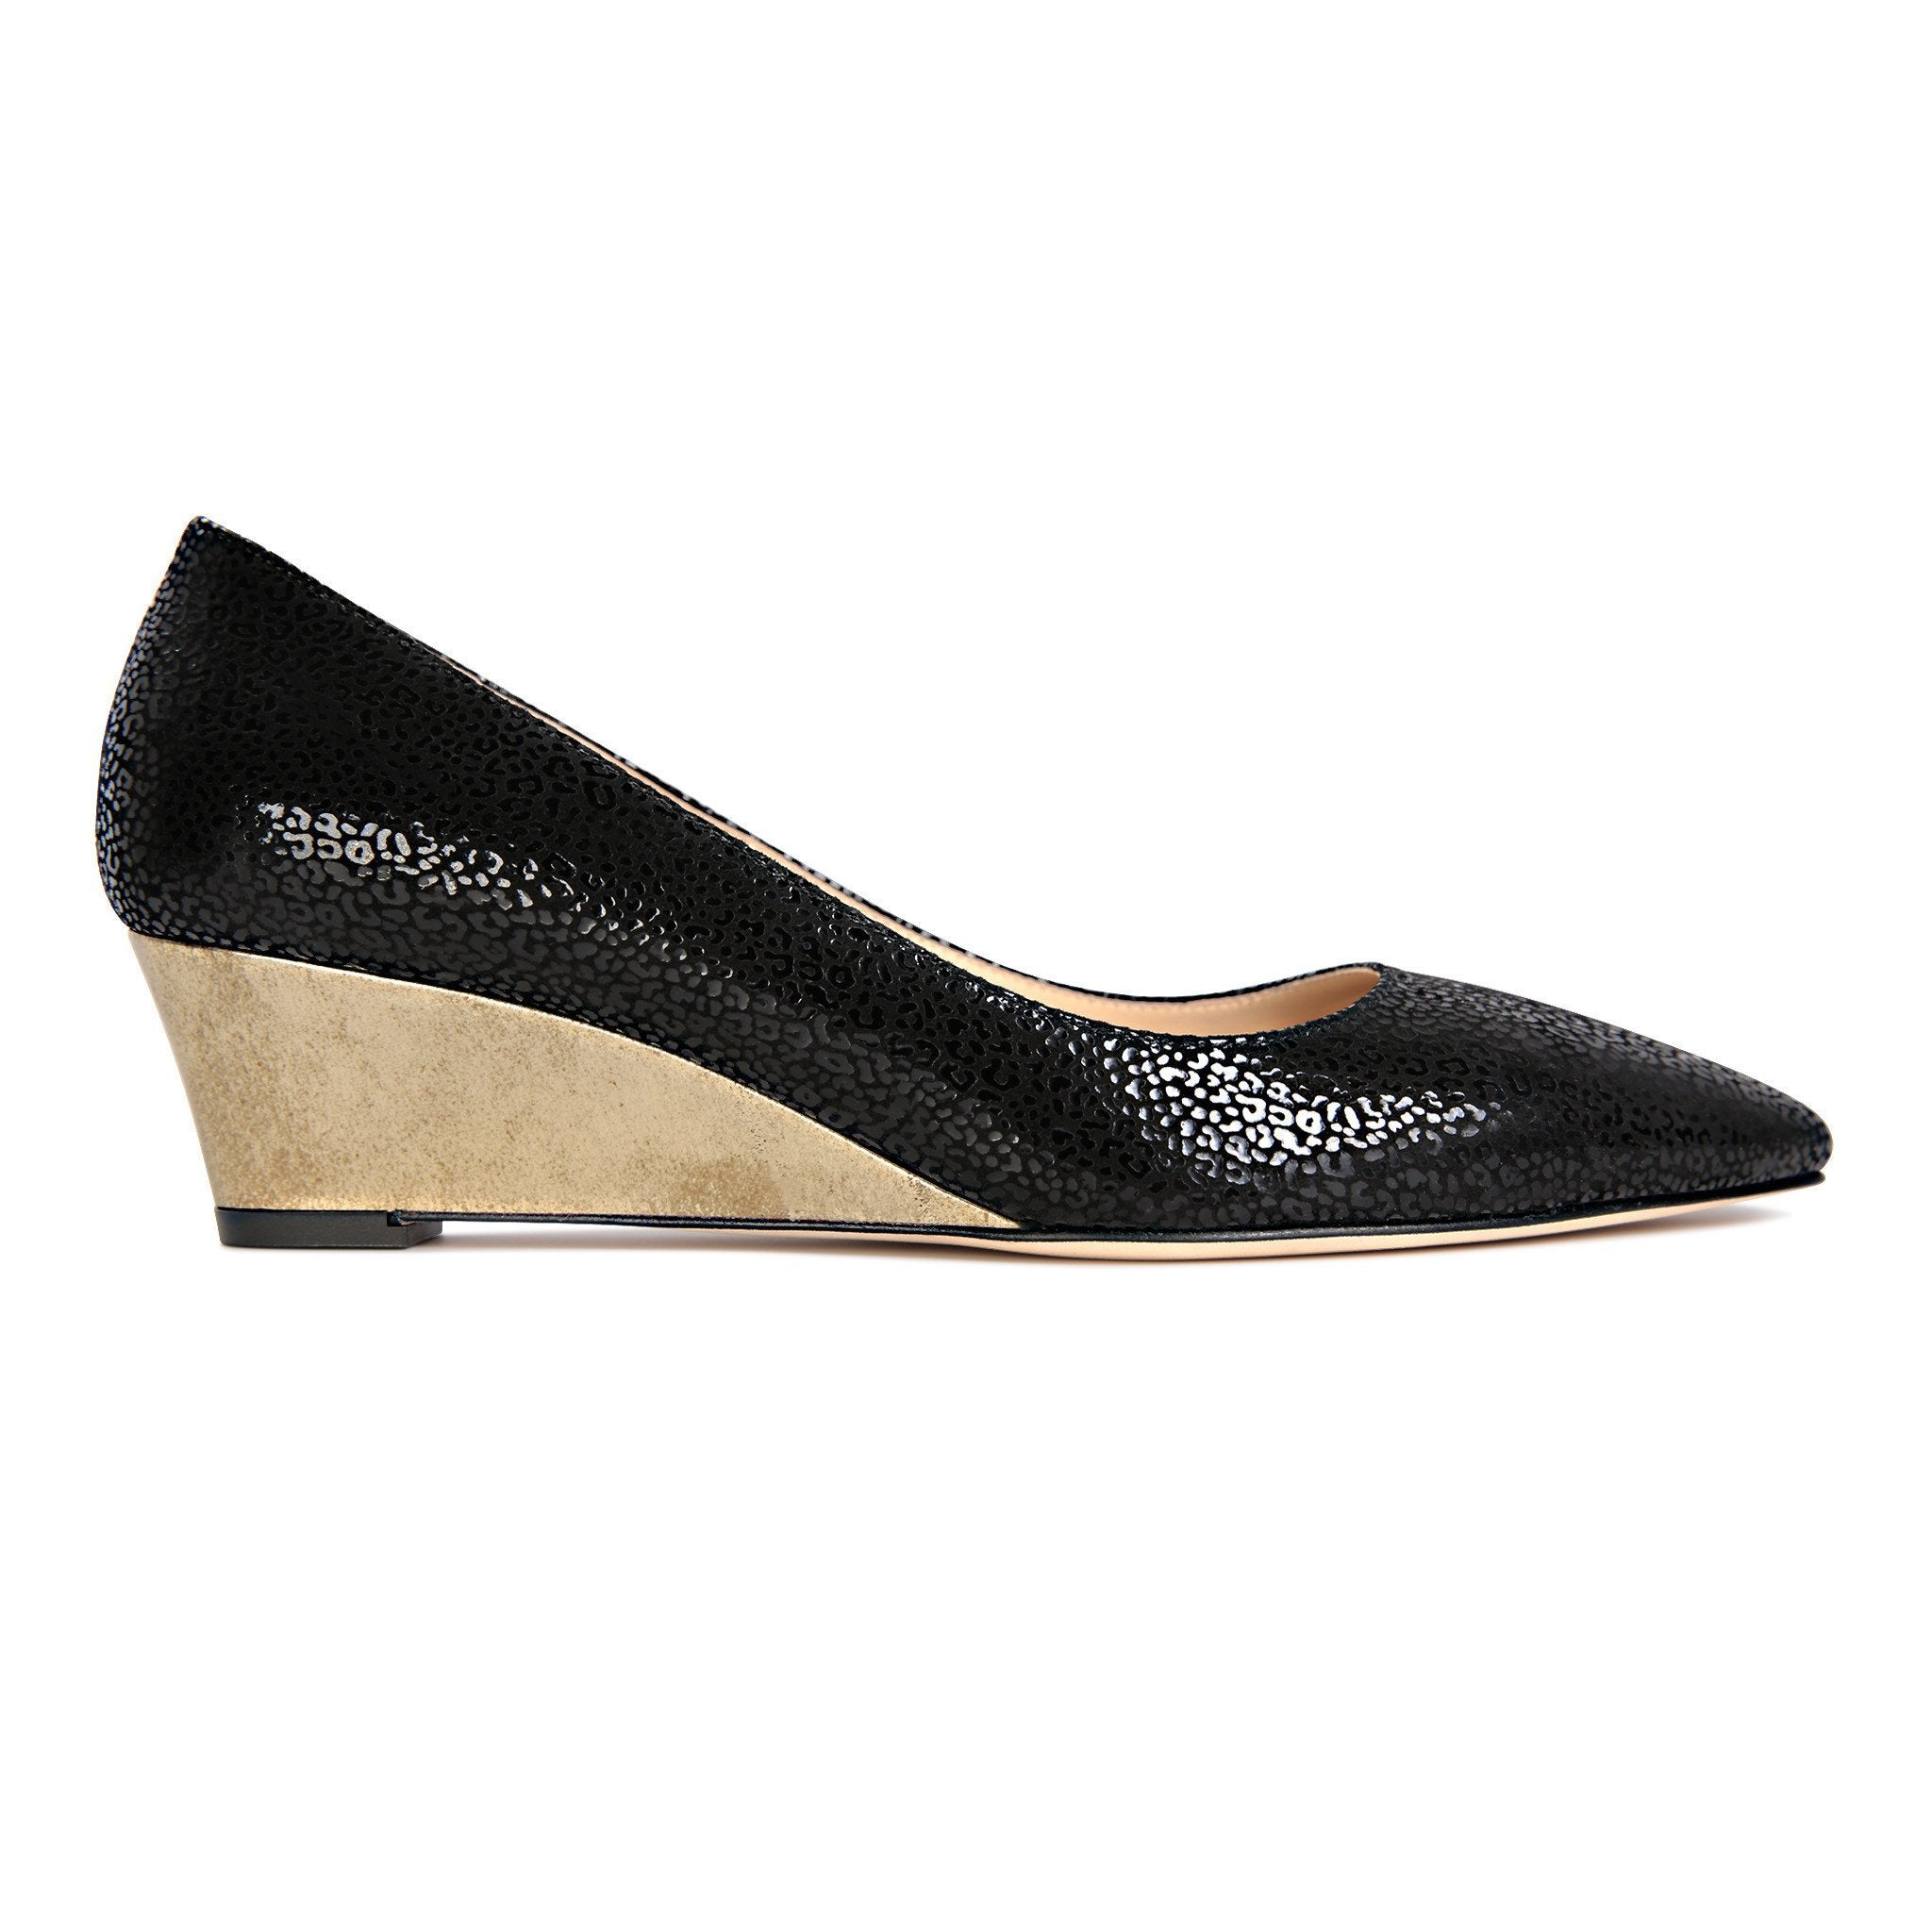 TRENTO - Savannah Nero + Metallic Spot Gold, VIAJIYU - Women's Hand Made Sustainable Luxury Shoes. Made in Italy. Made to Order.